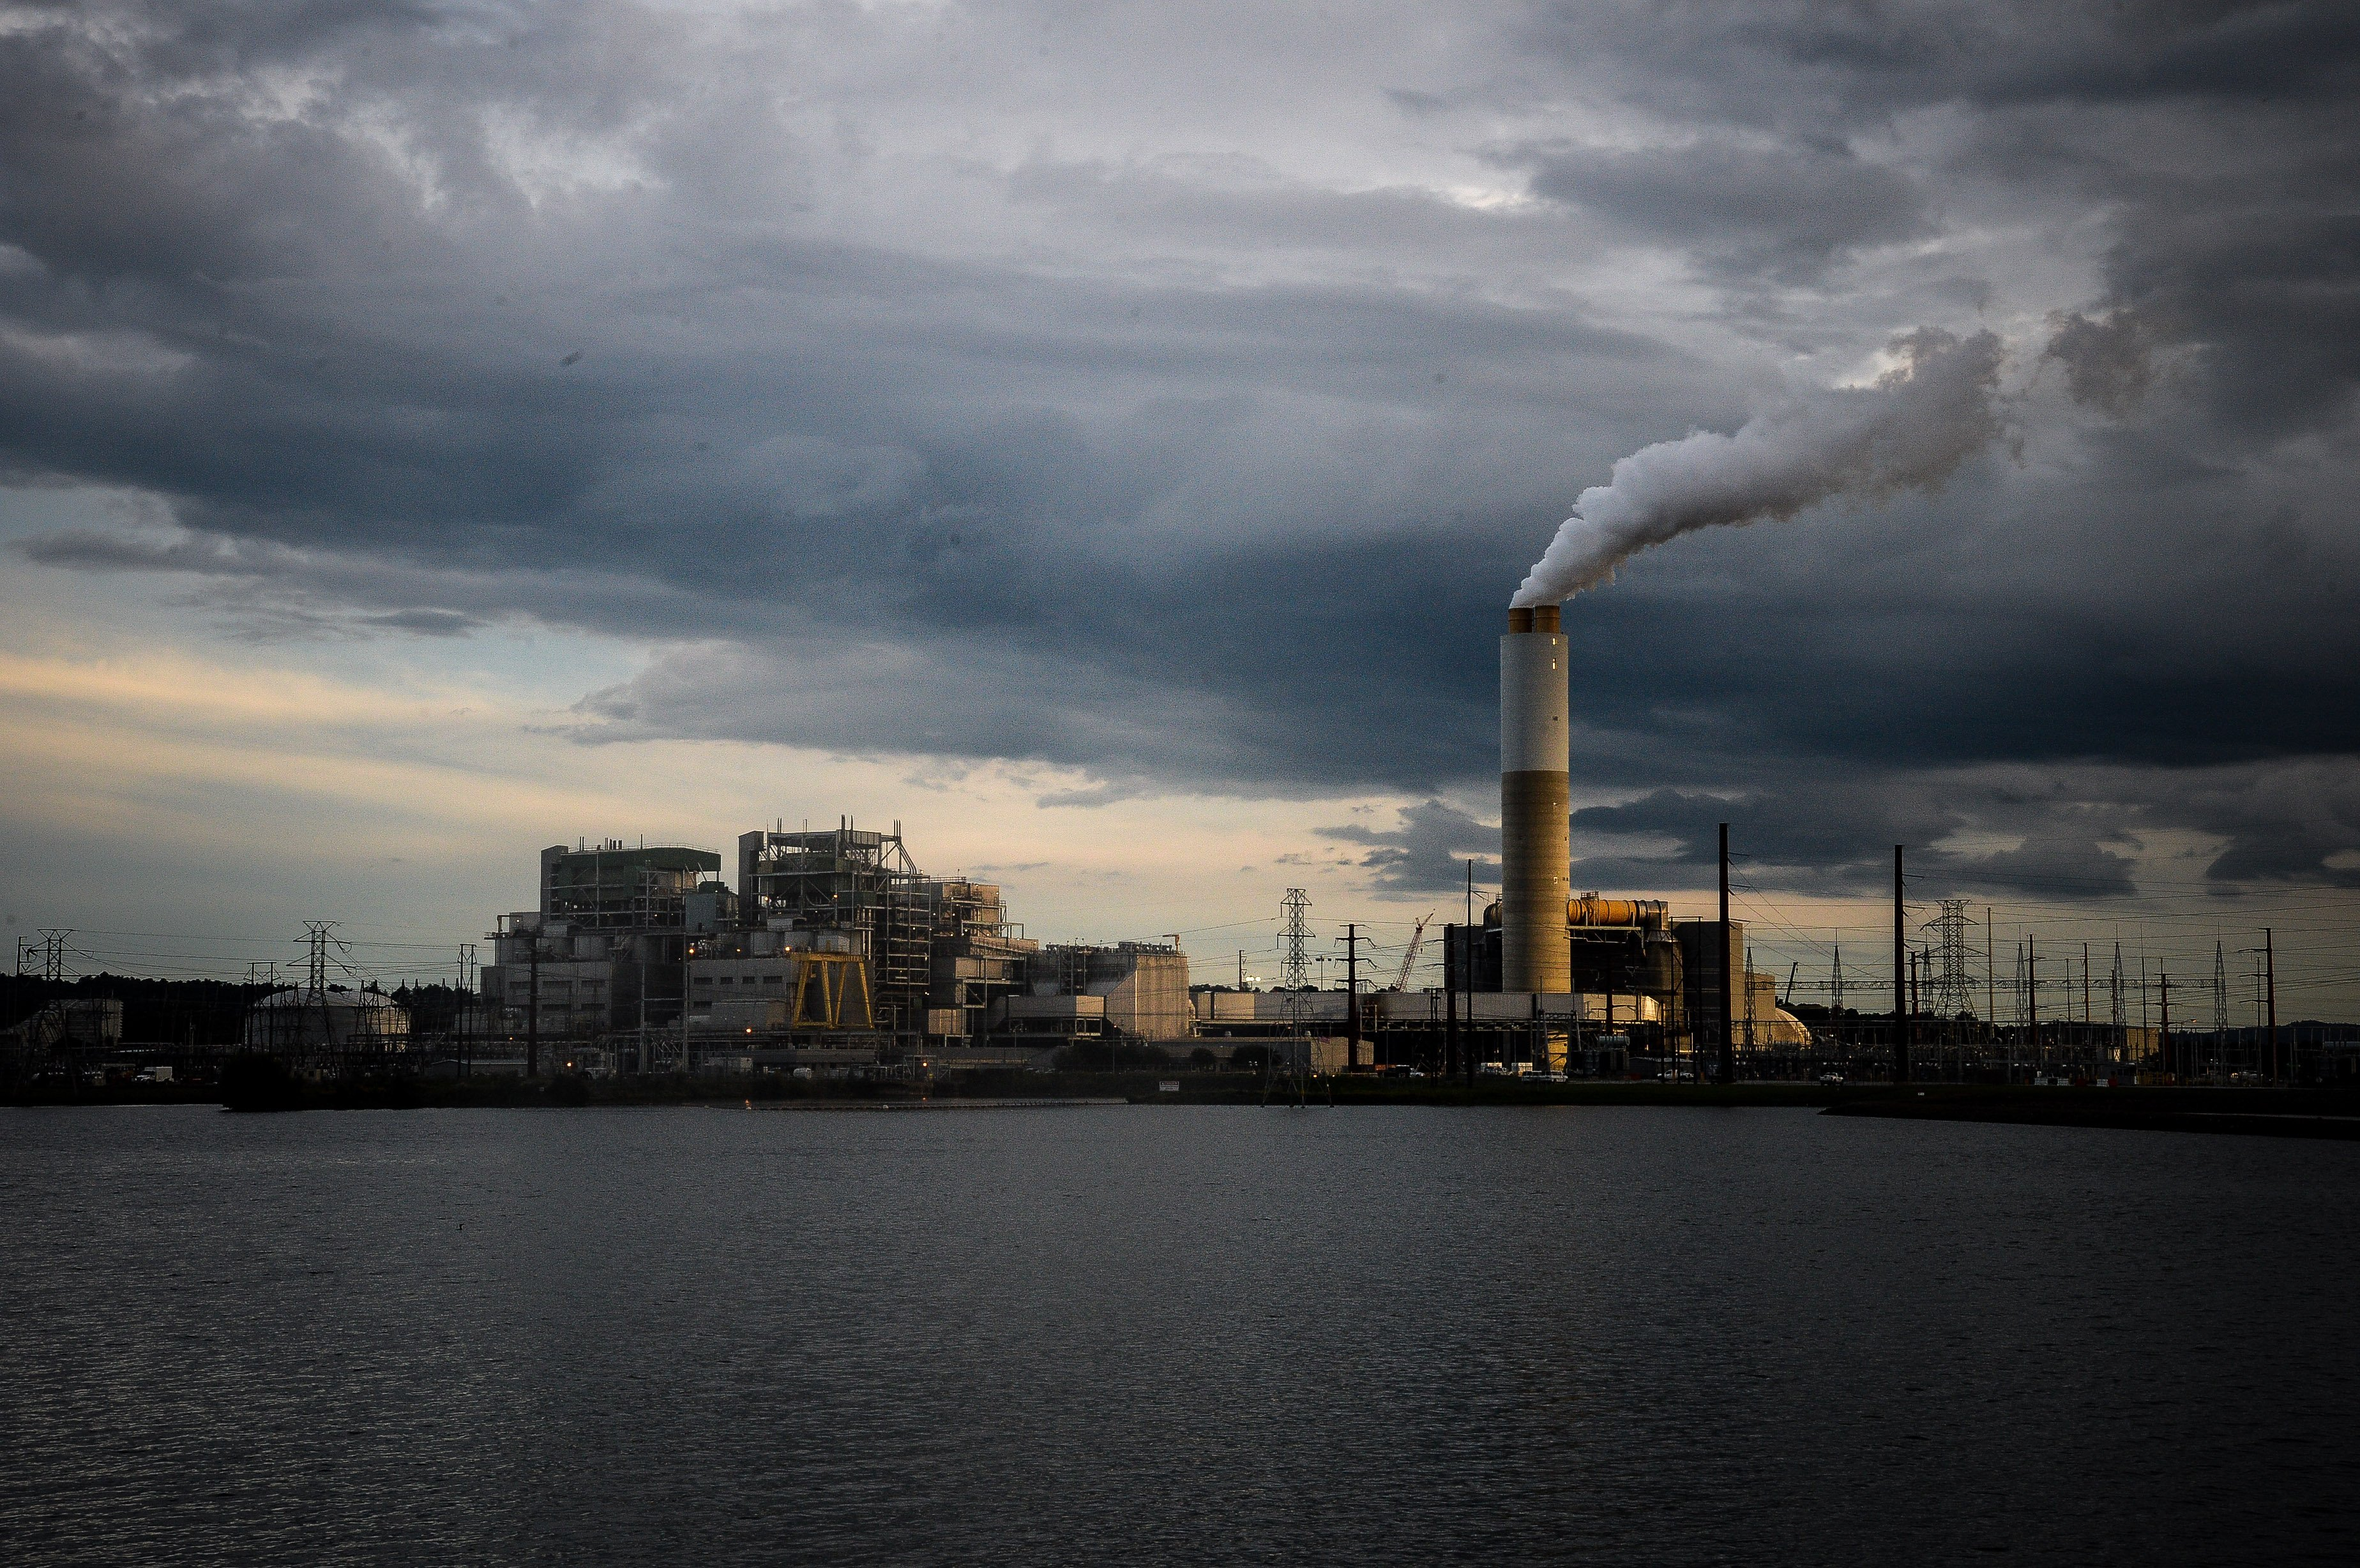 Investors turn up the heat on companies over climate change